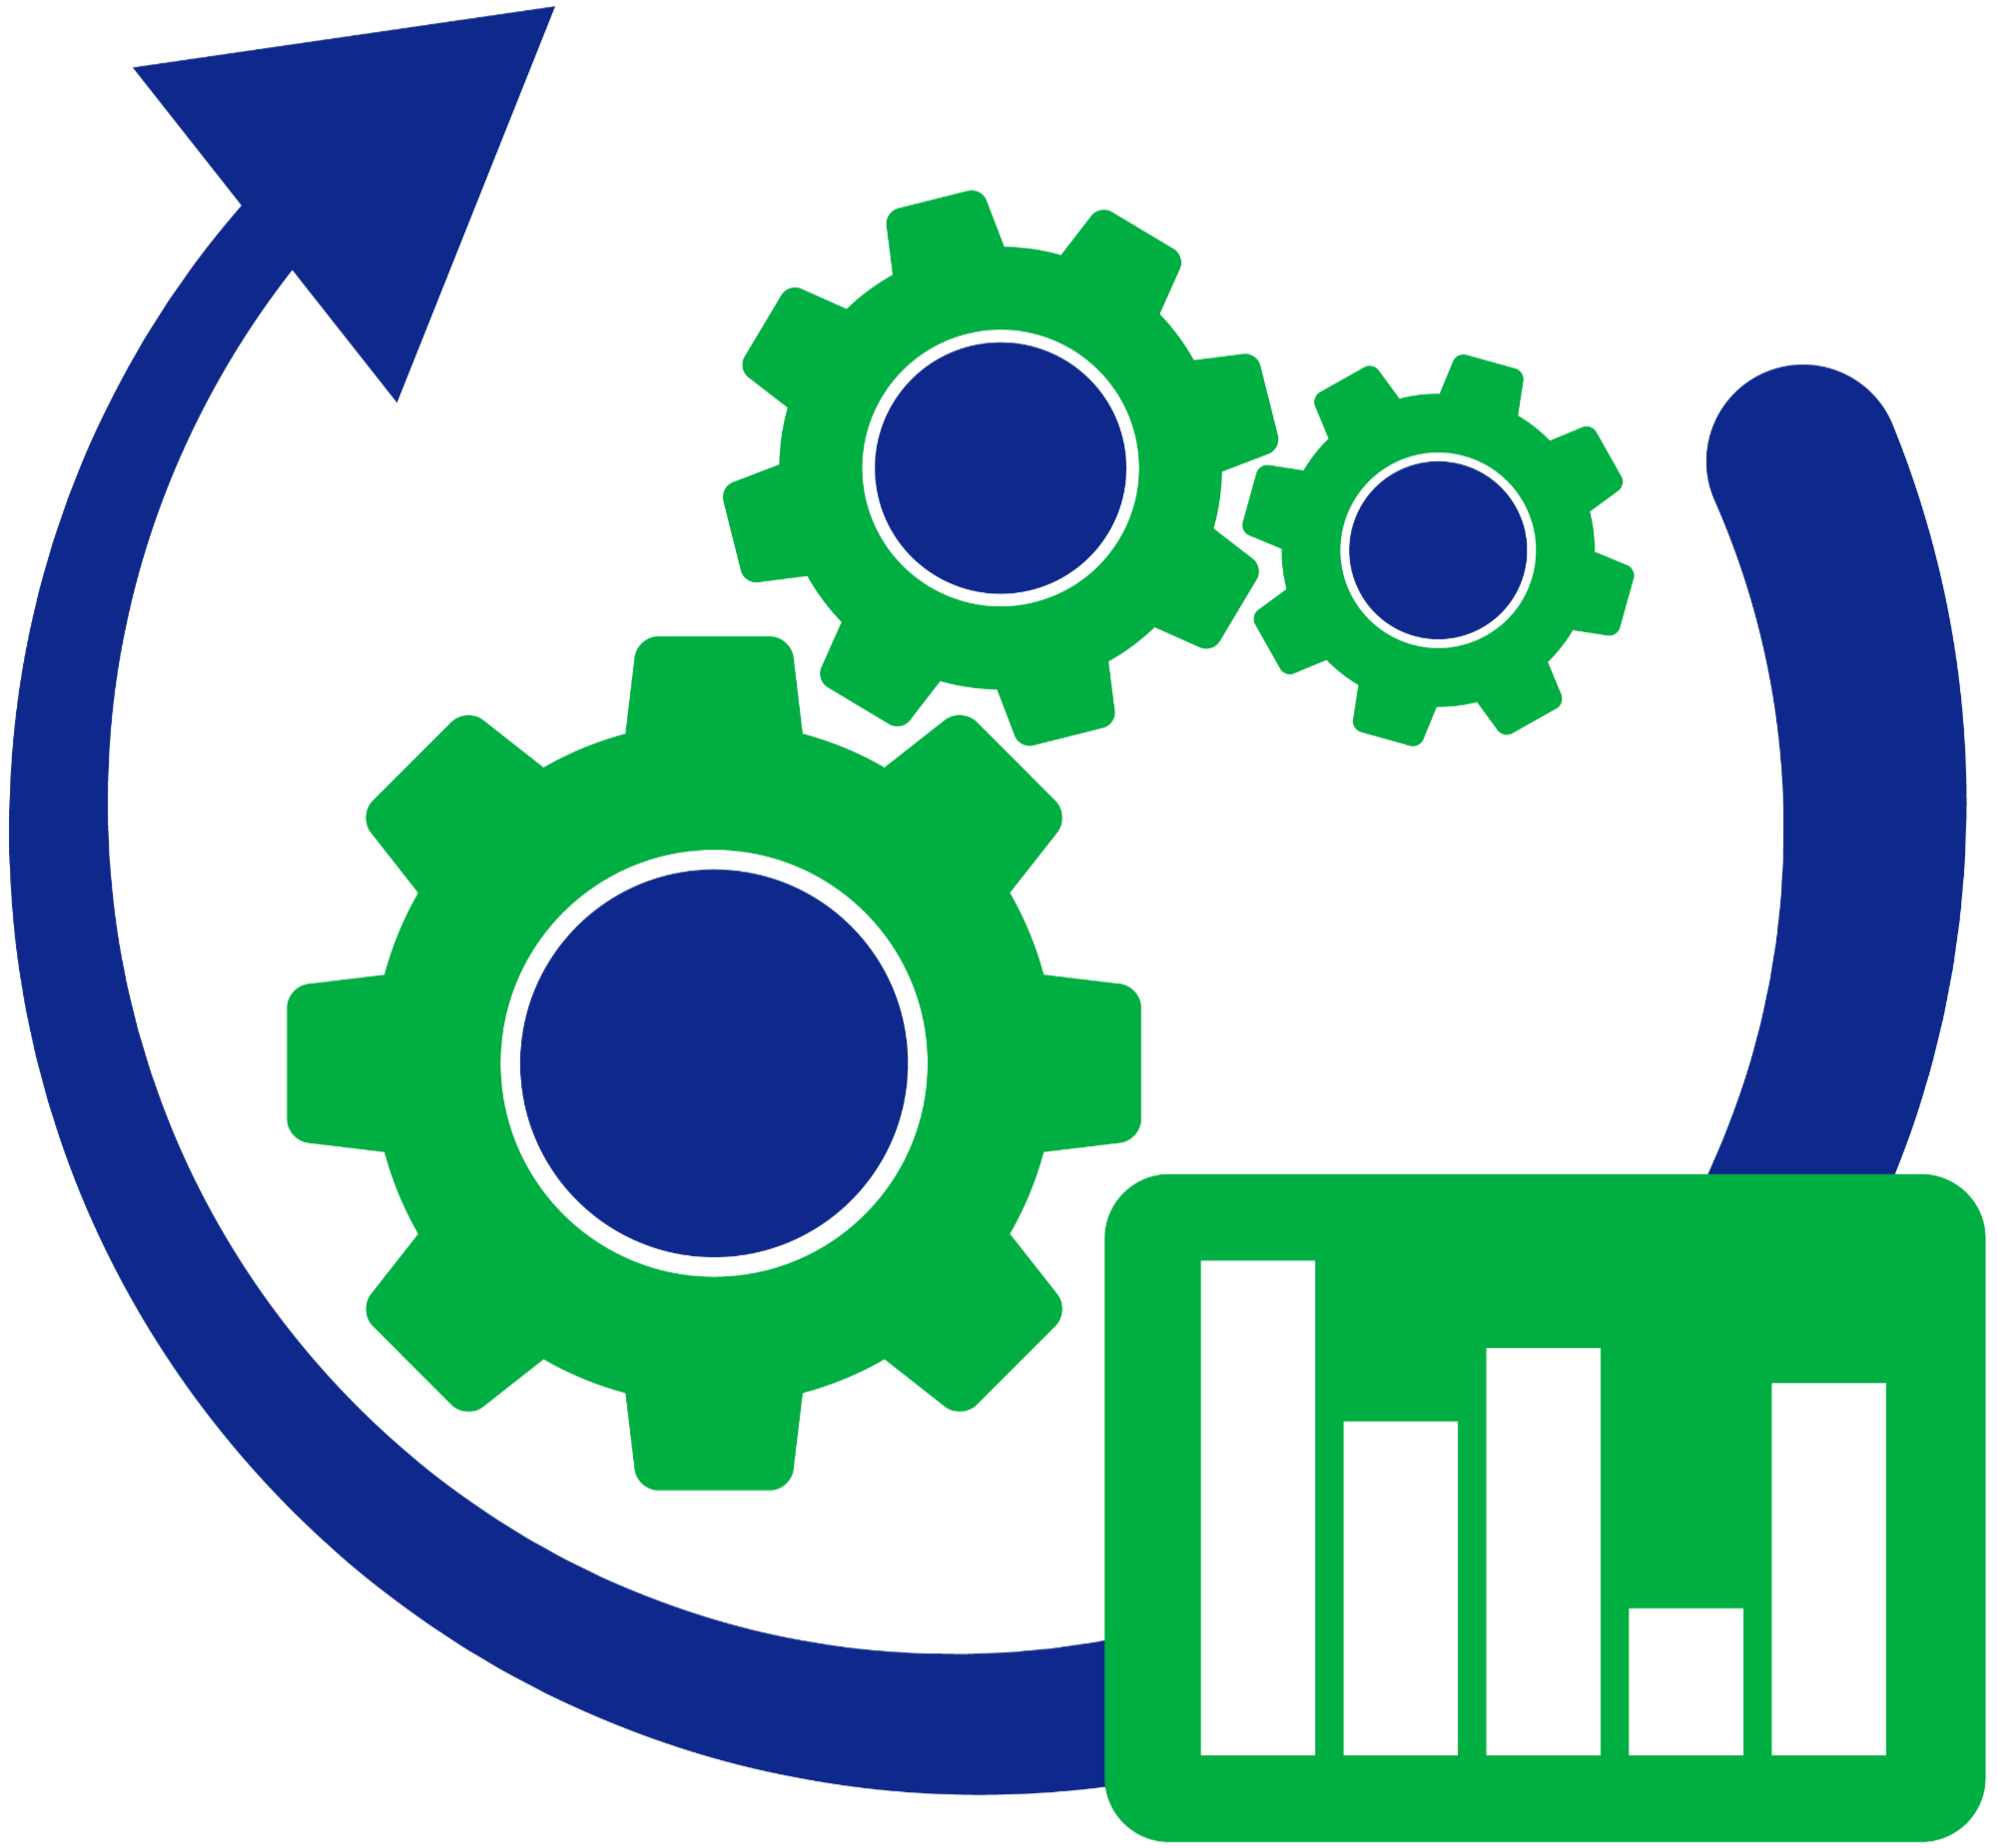 Automating tasks with Excel